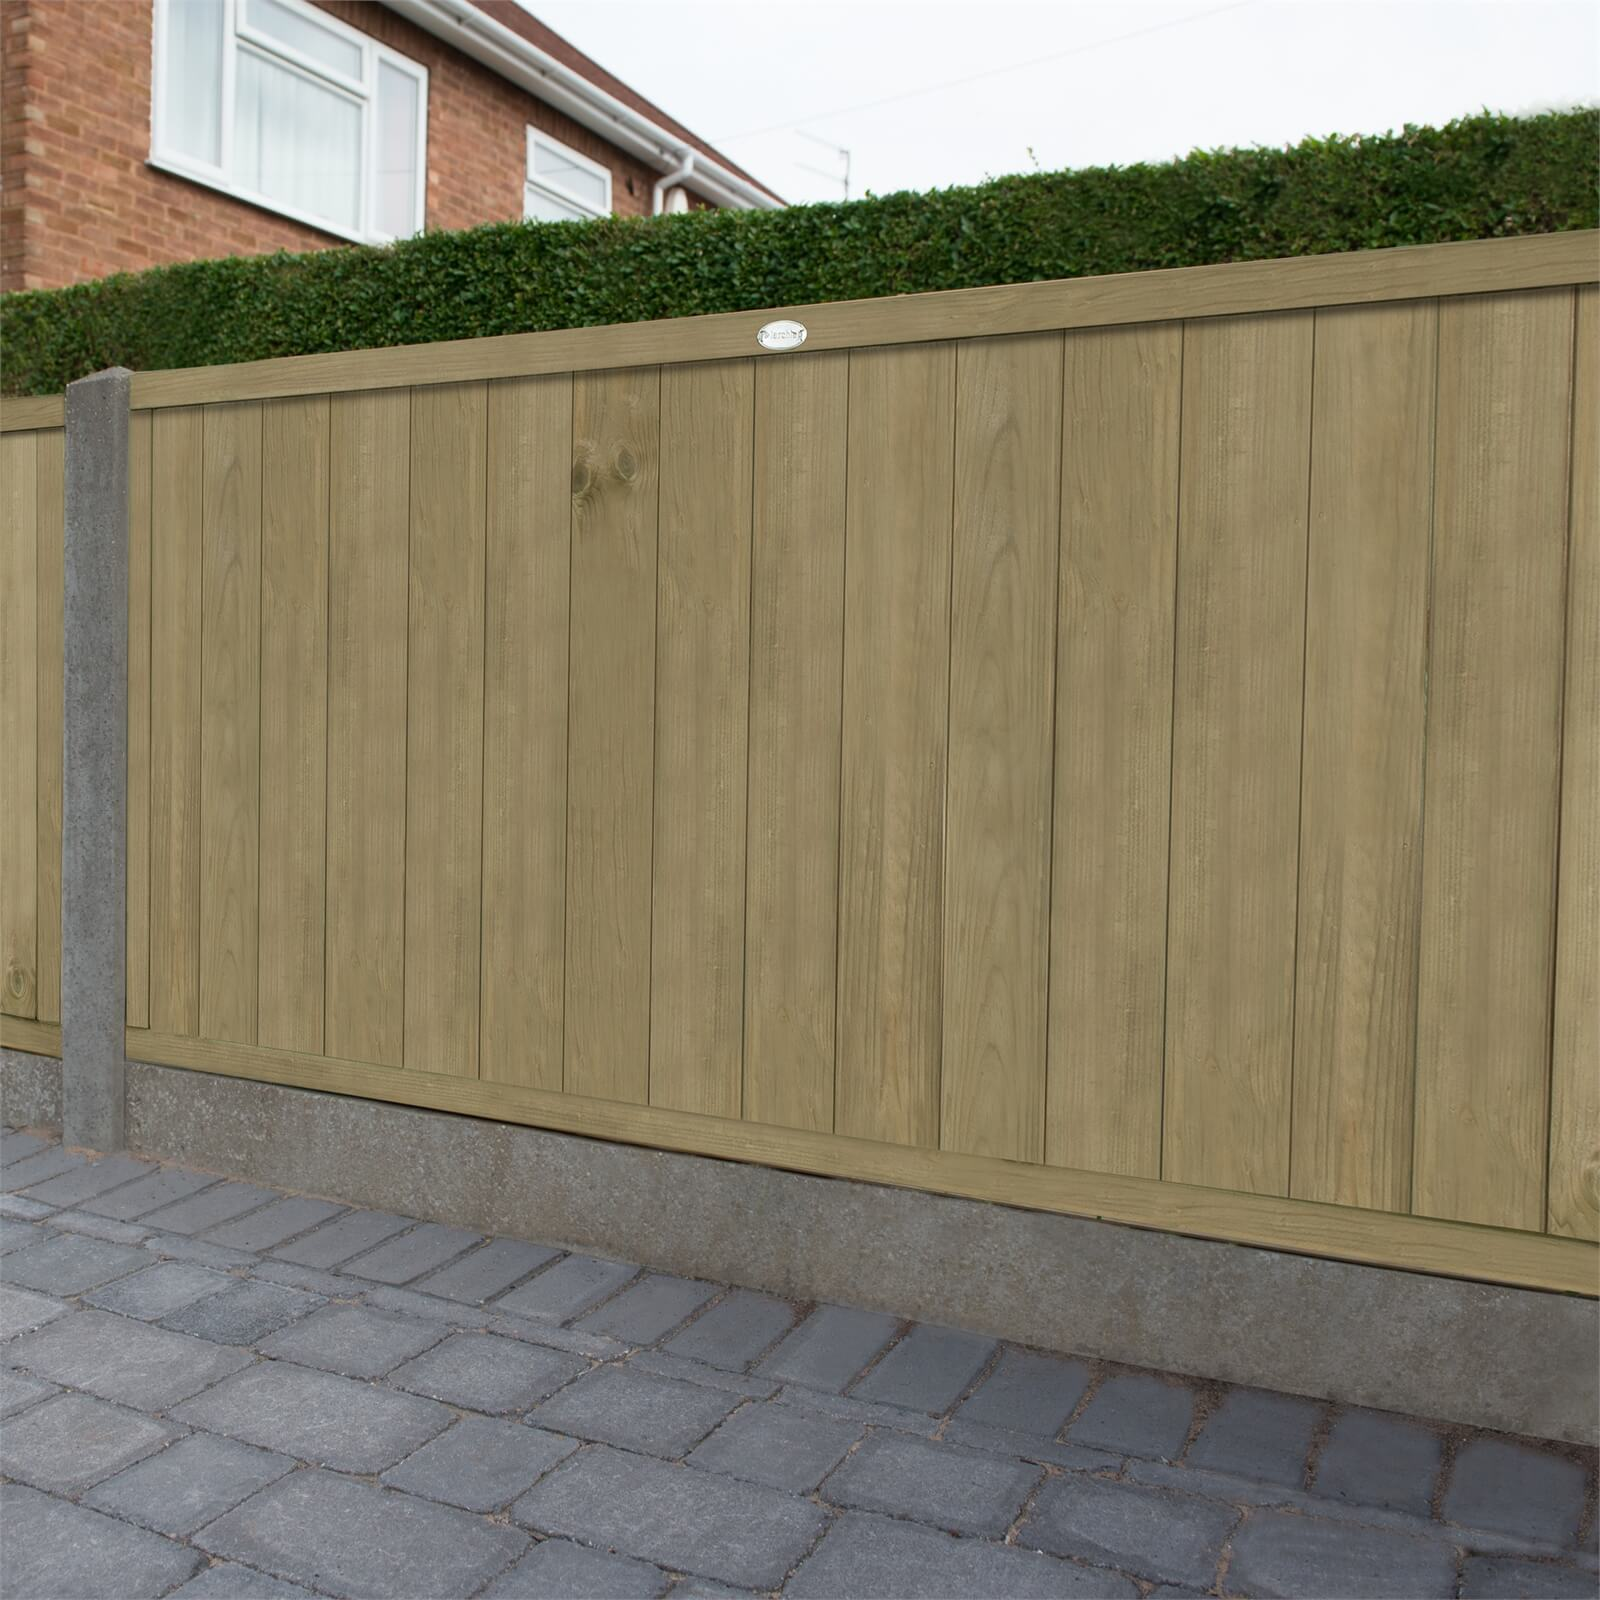 Forest Vertical Tongue & Groove Fence Panel - 4ft - Pack of 3